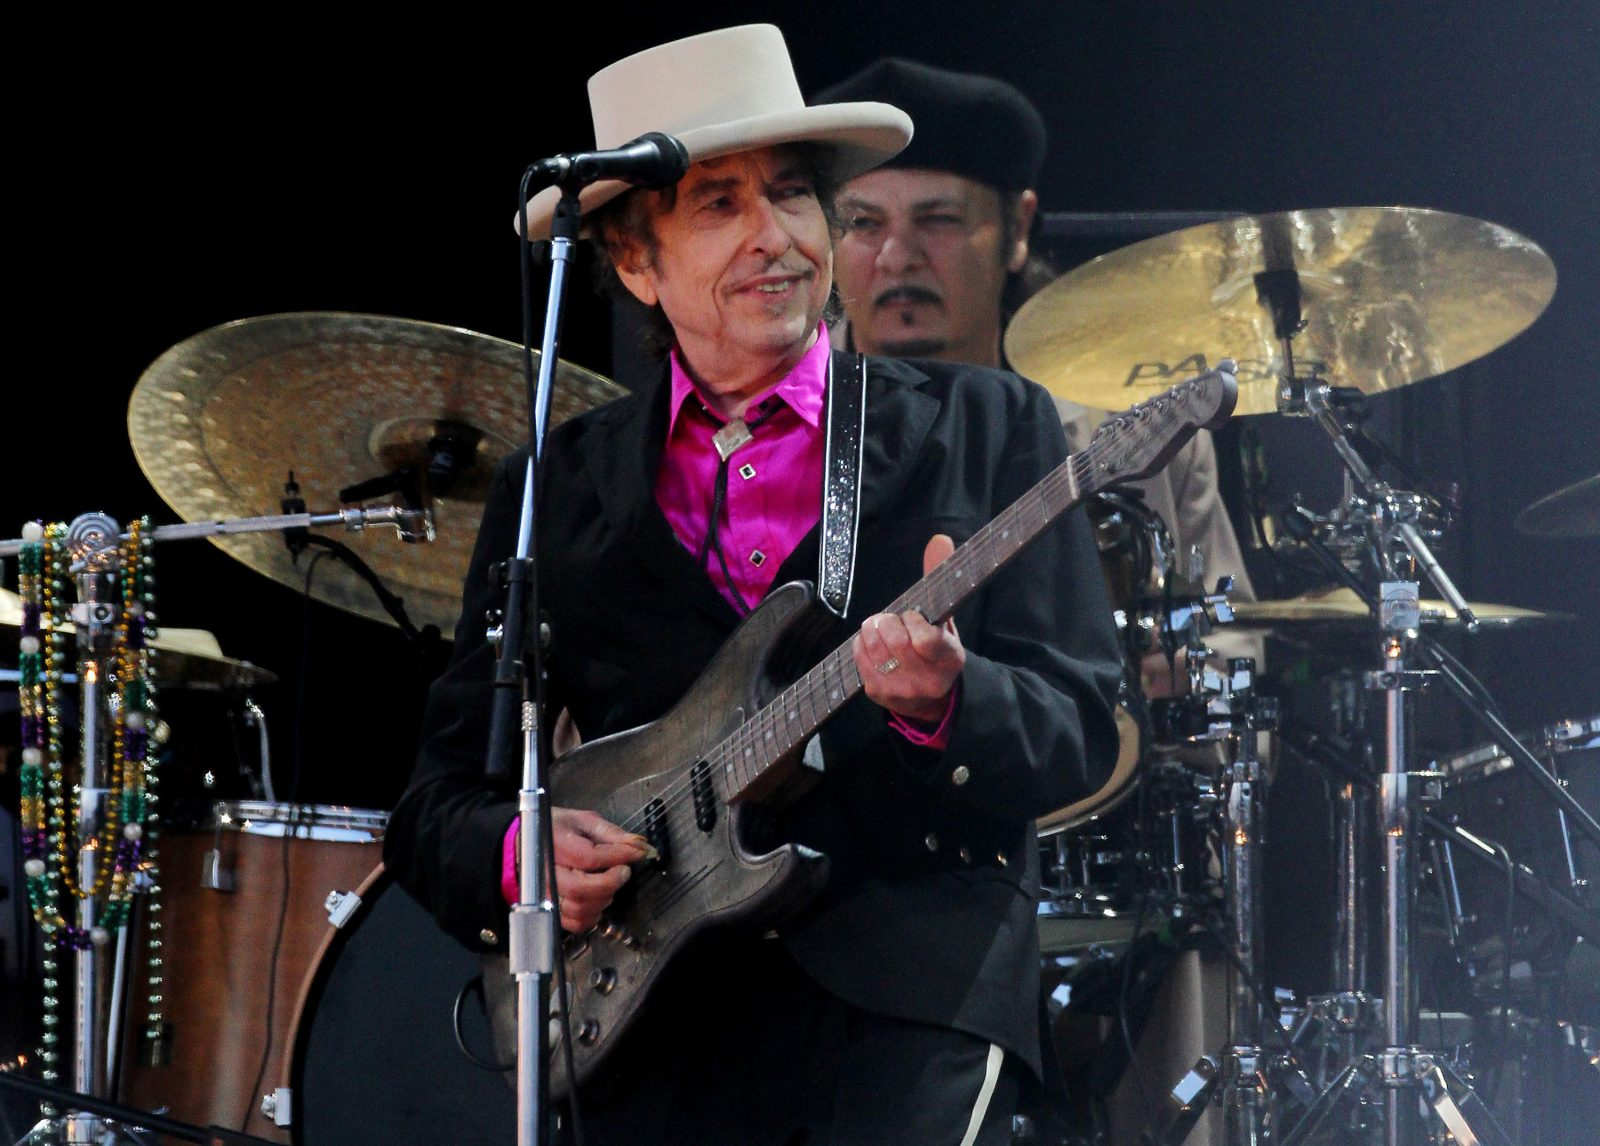 Bob Dylan was hailed as 'a great poet in the English-speaking tradition' following his surprise win of the Nobel Prize in Literature. (Gareth Fuller/PA Wire/Zuma Press/TNS)